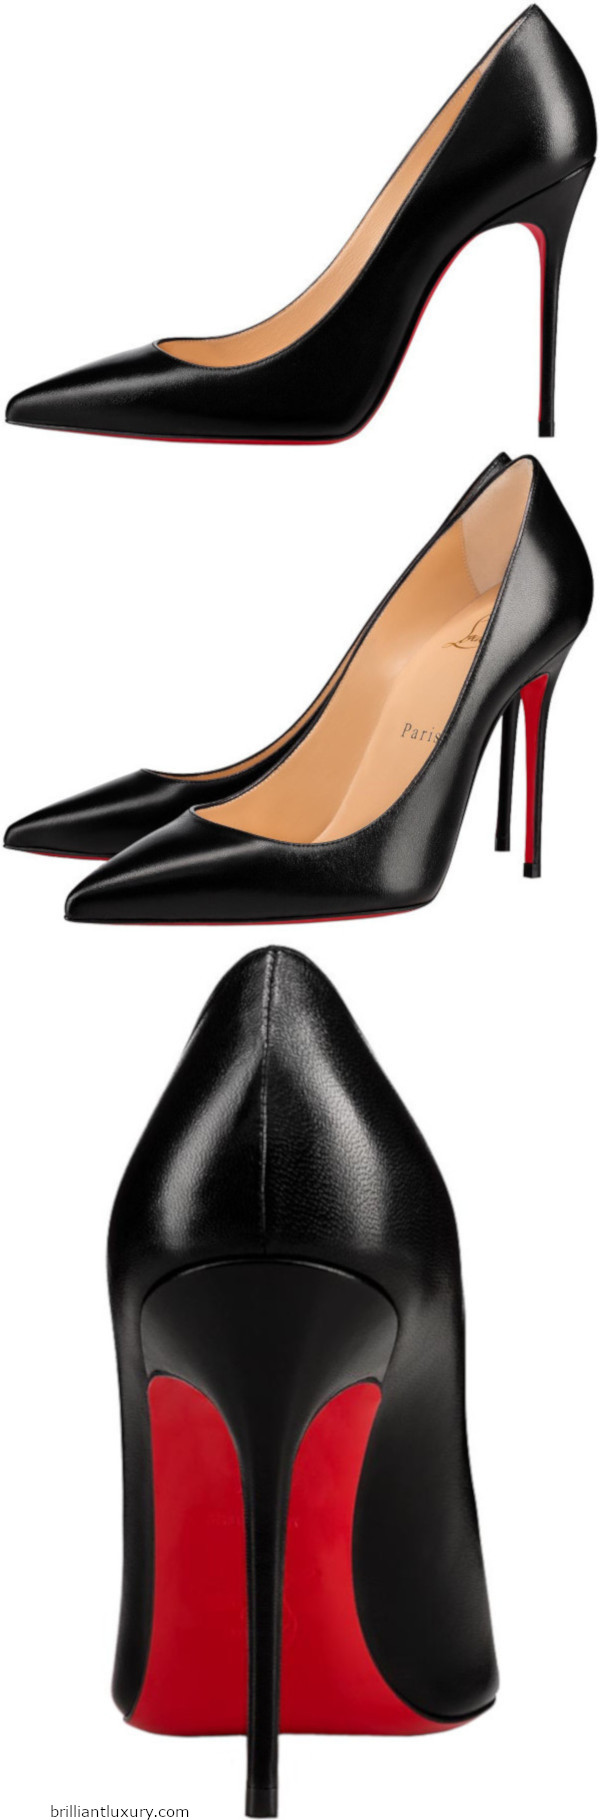 Decollette nappa leather shoes